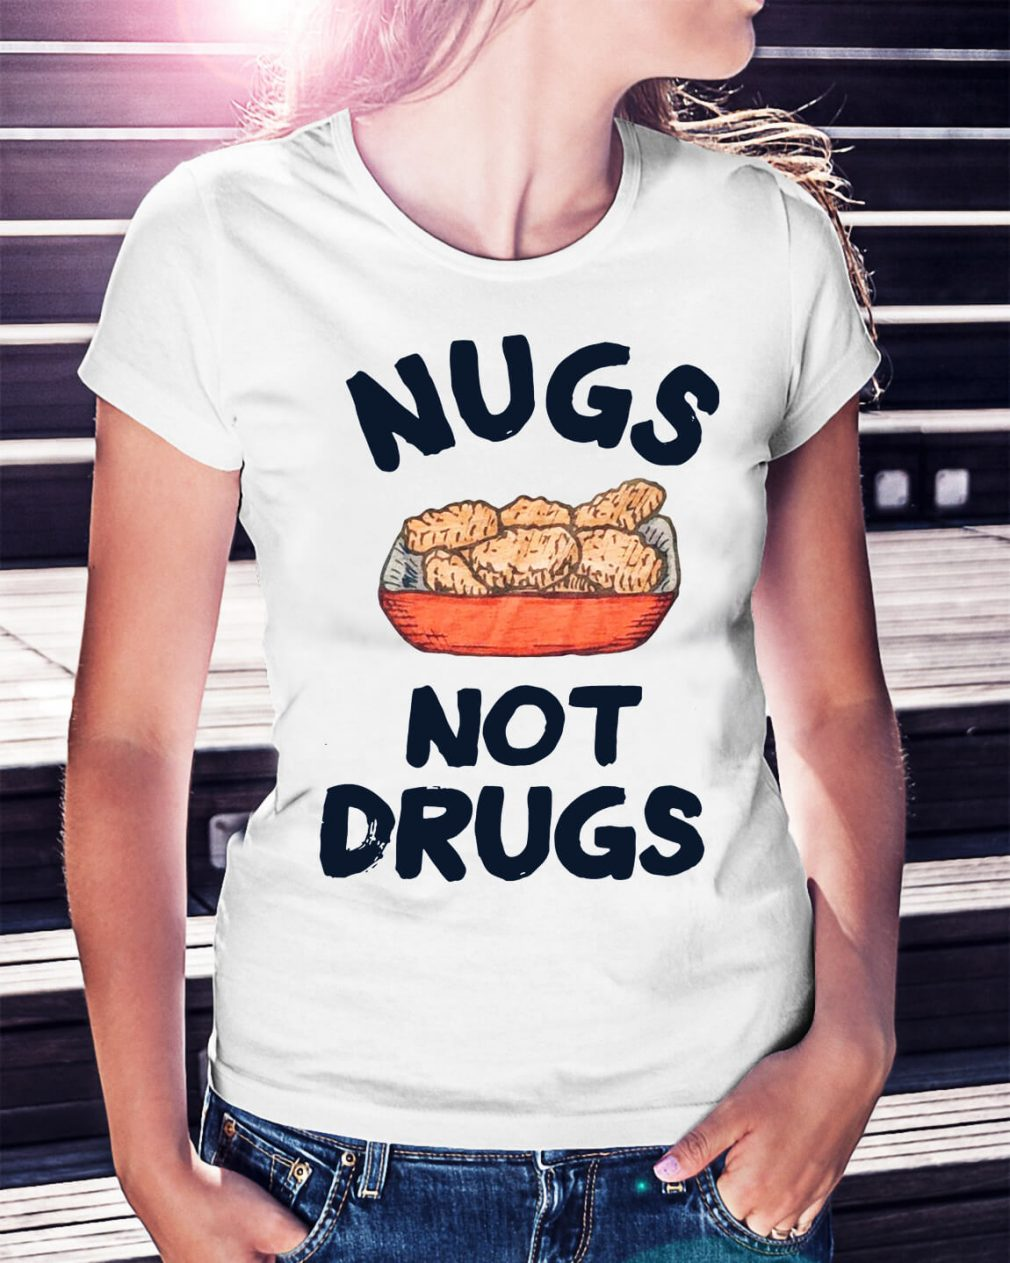 Nugs not drugs shirt